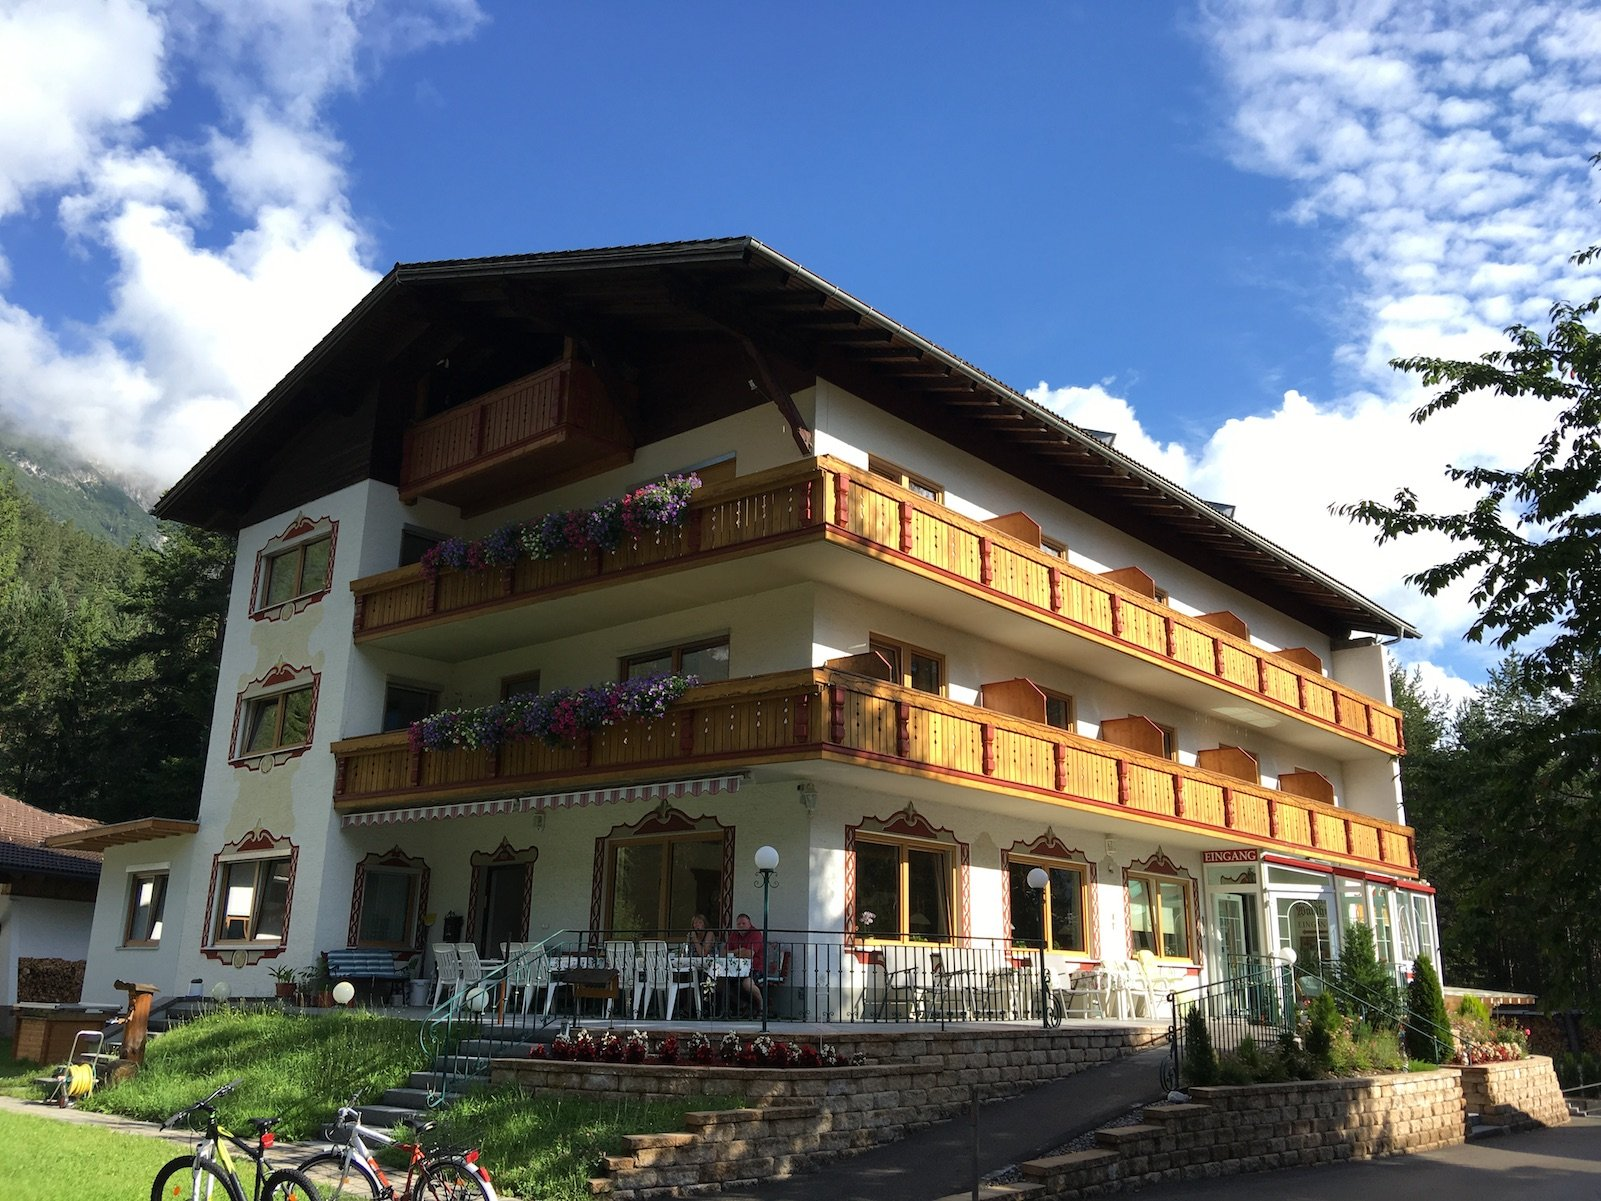 Die Pension Waldhof Stanzach am Morgen